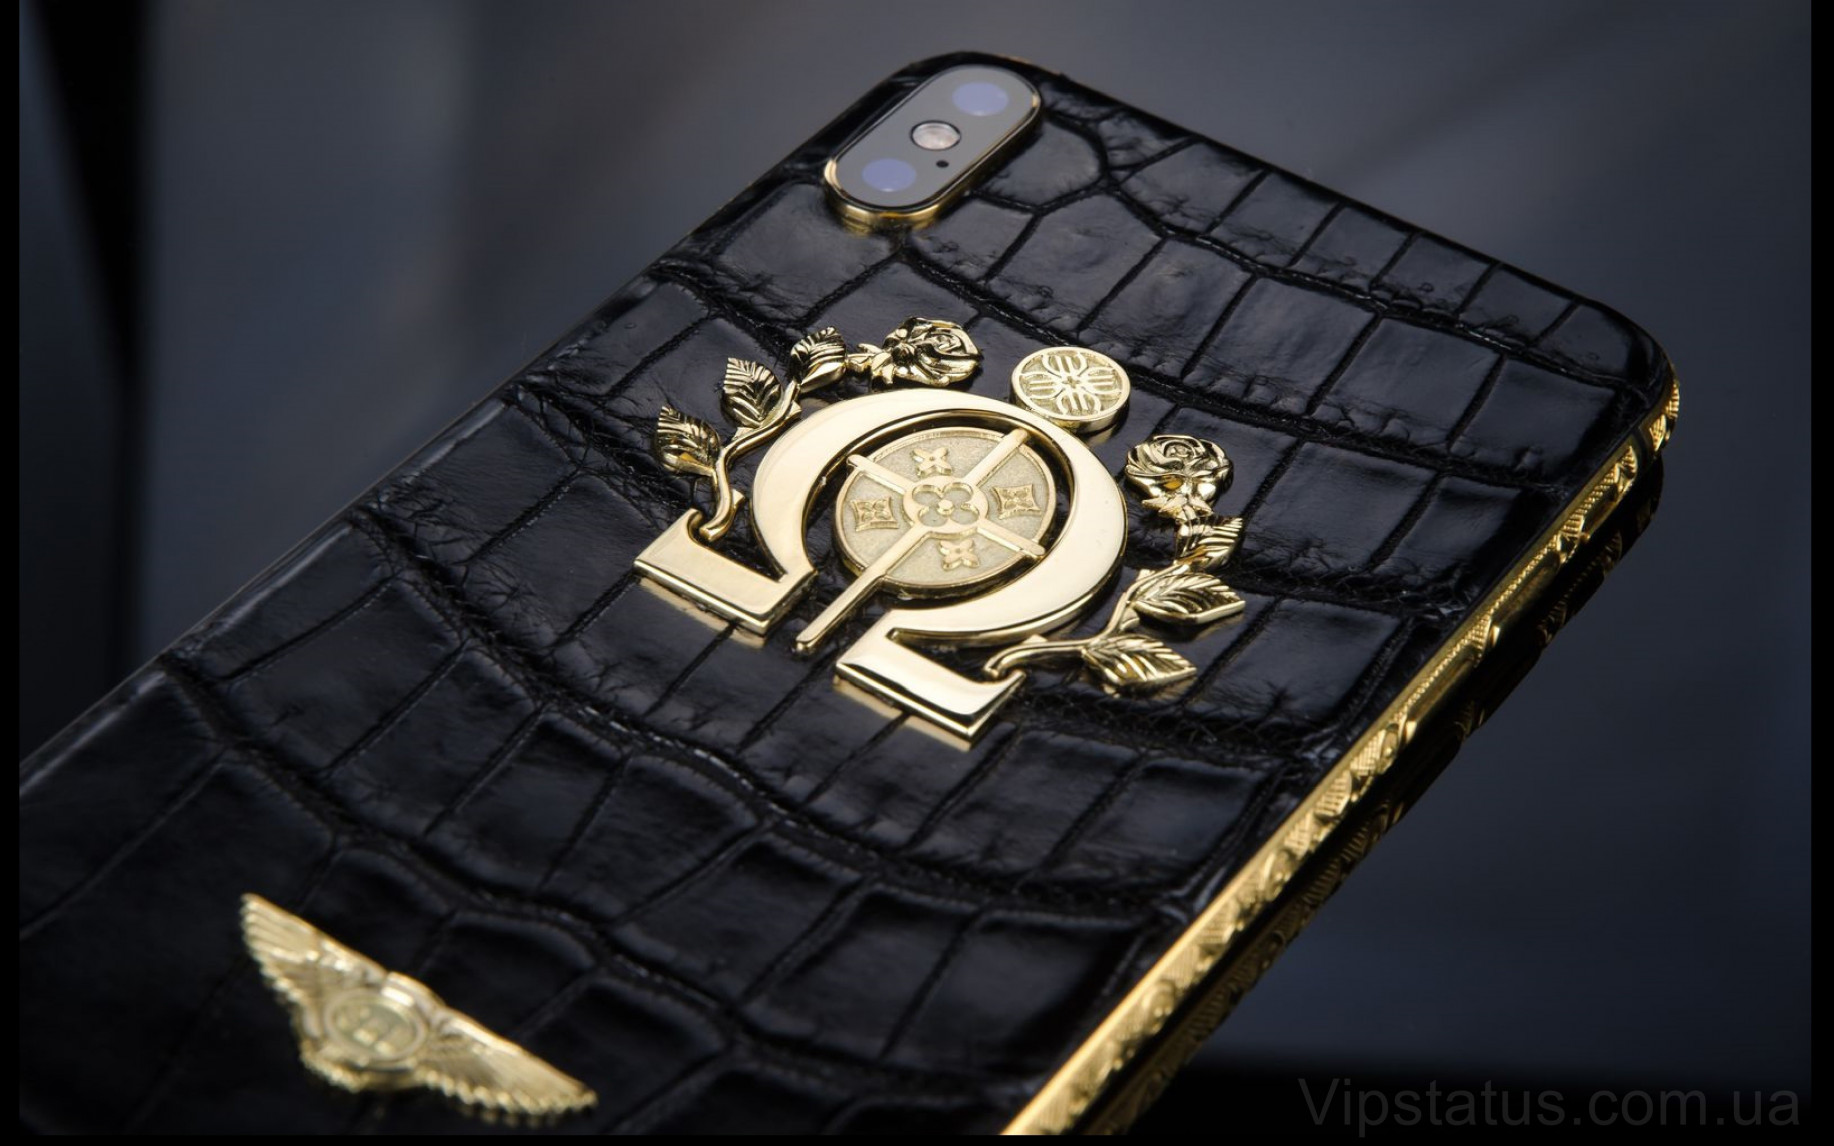 Elite Louis Vuitton IPHONE 11 PRO 512 GB Louis Vuitton IPHONE 11 PRO 512 GB image 3